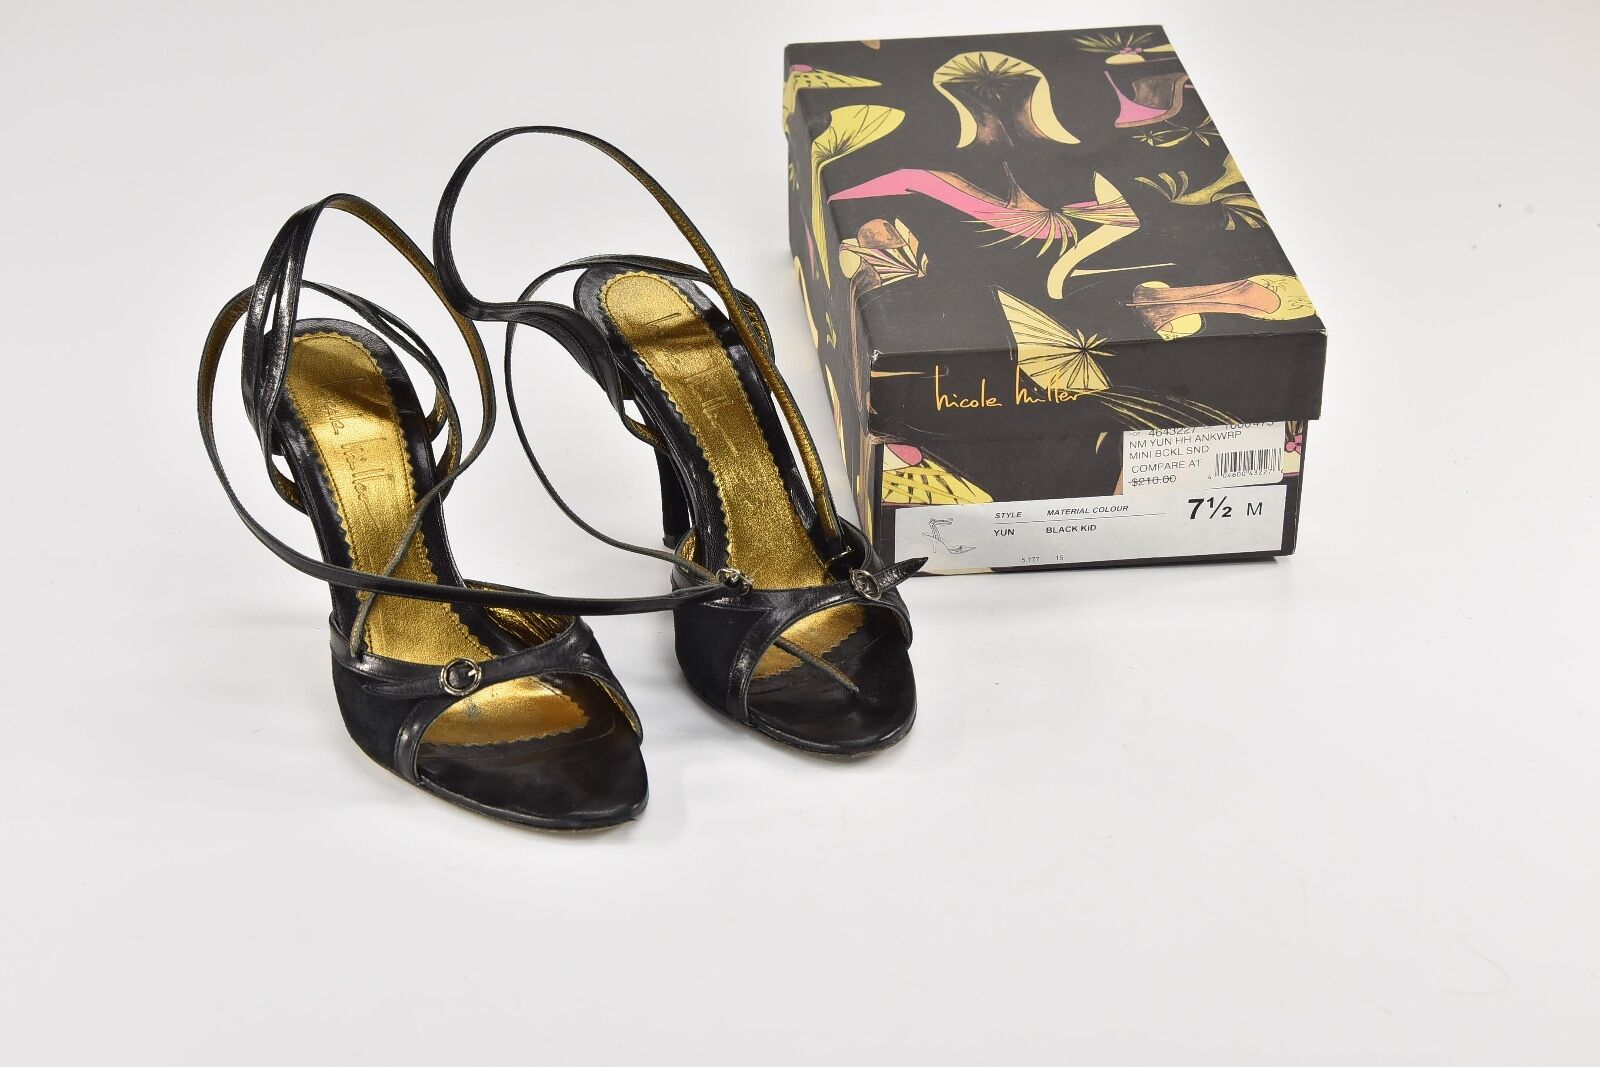 1b5e509caed Nicole Miller Black Leather Yun Strappy Sandals HEELS 7.5 M - R64 ...